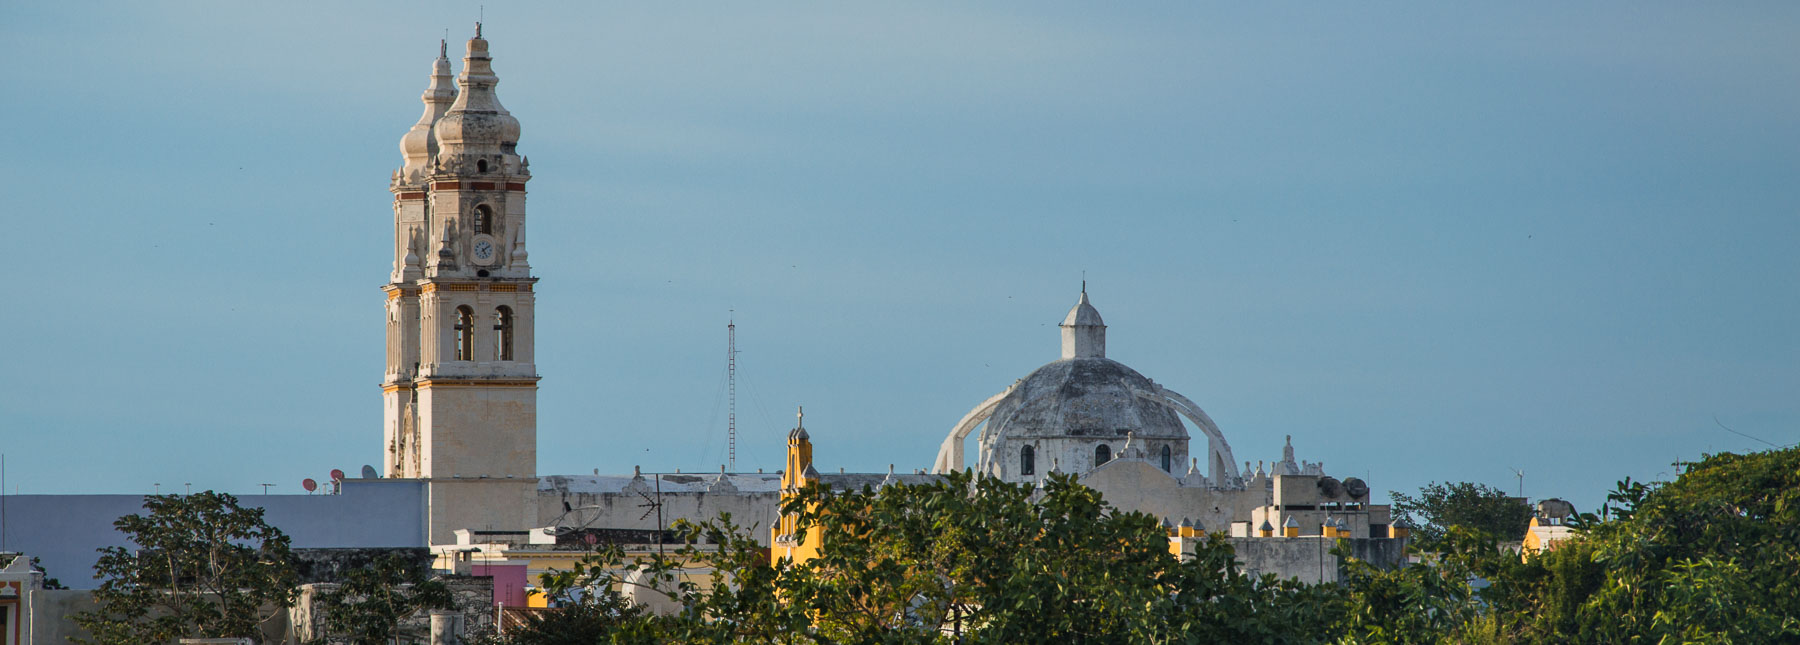 View of Campeche's cathedral from the walls.